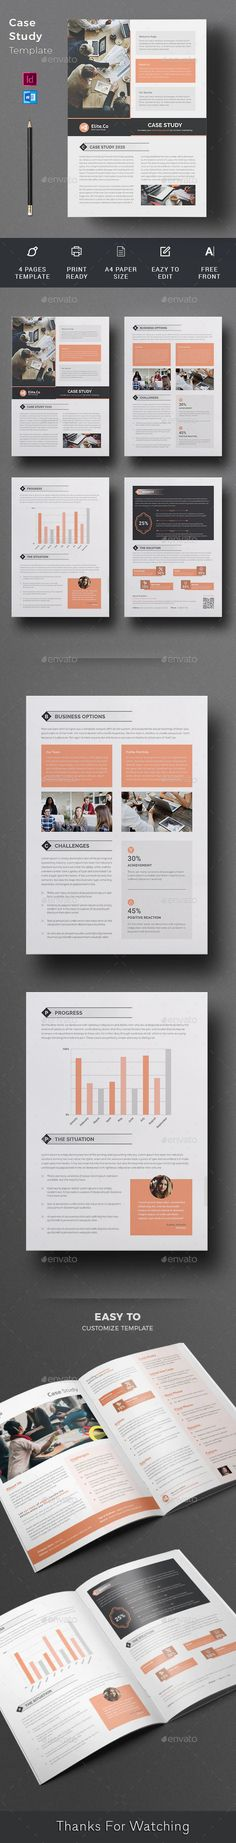 Case Study Brochure Case Study Brochure Template suitable for presenting your case studies in a professional way. You can use this template in multipurpose way like flyer, newsletter, printed portfolio or other editorial designs. Case Study Template, Page Template, Brochure Template, Templates, A4 Paper, Paper Size, Printed Portfolio, Change Image, Editorial Design